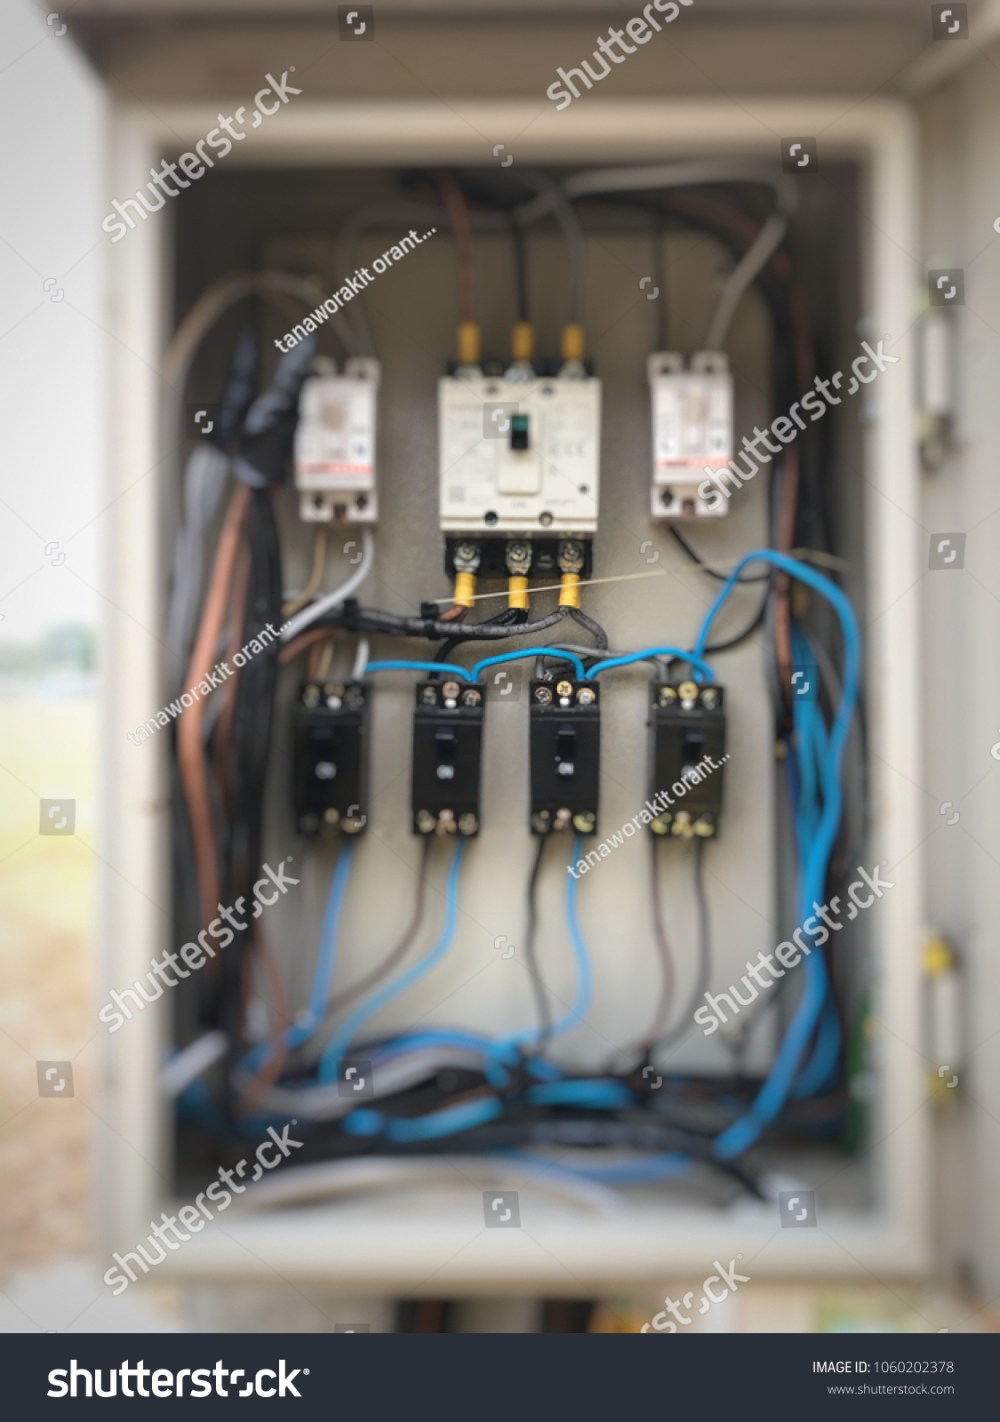 medium resolution of electric circuit breaker electric box electricity distribution box with wire and circuit breaker electric breaker switch installed on a cement pole